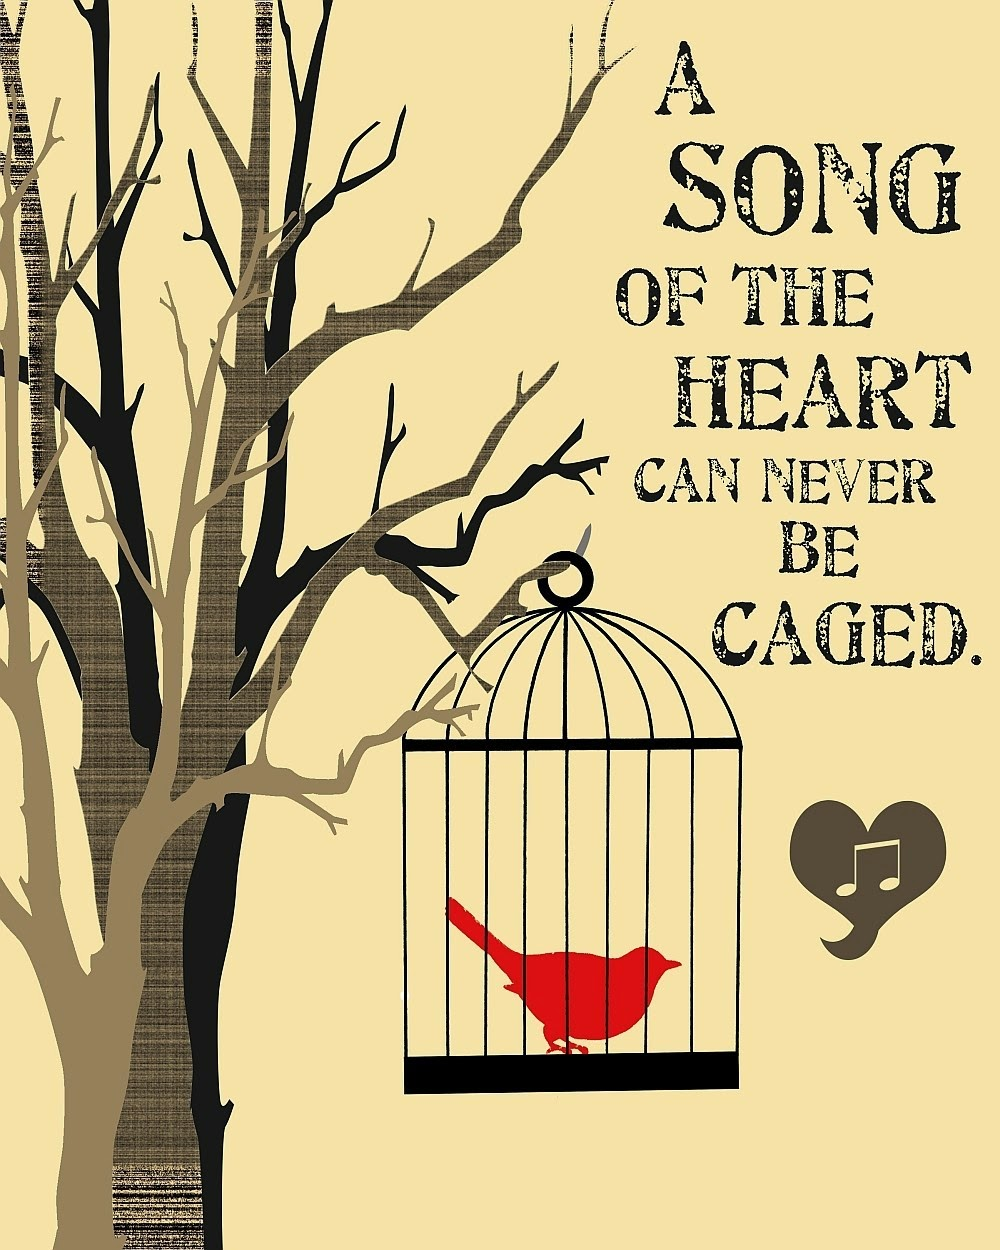 Caged Bird Questions and Answers